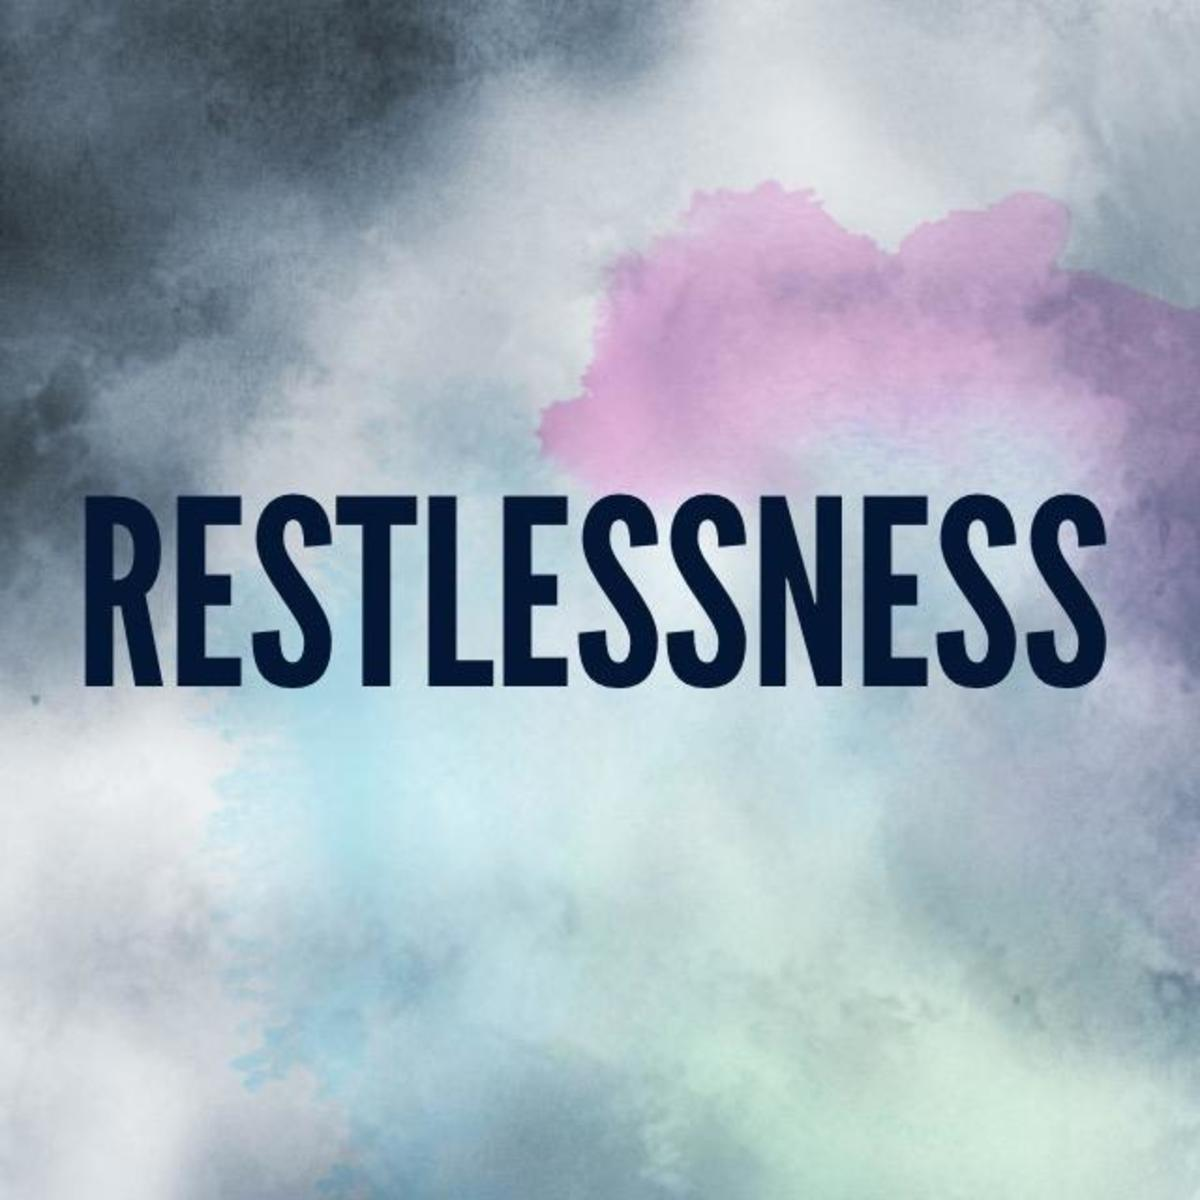 What To Do With Your Restlessness